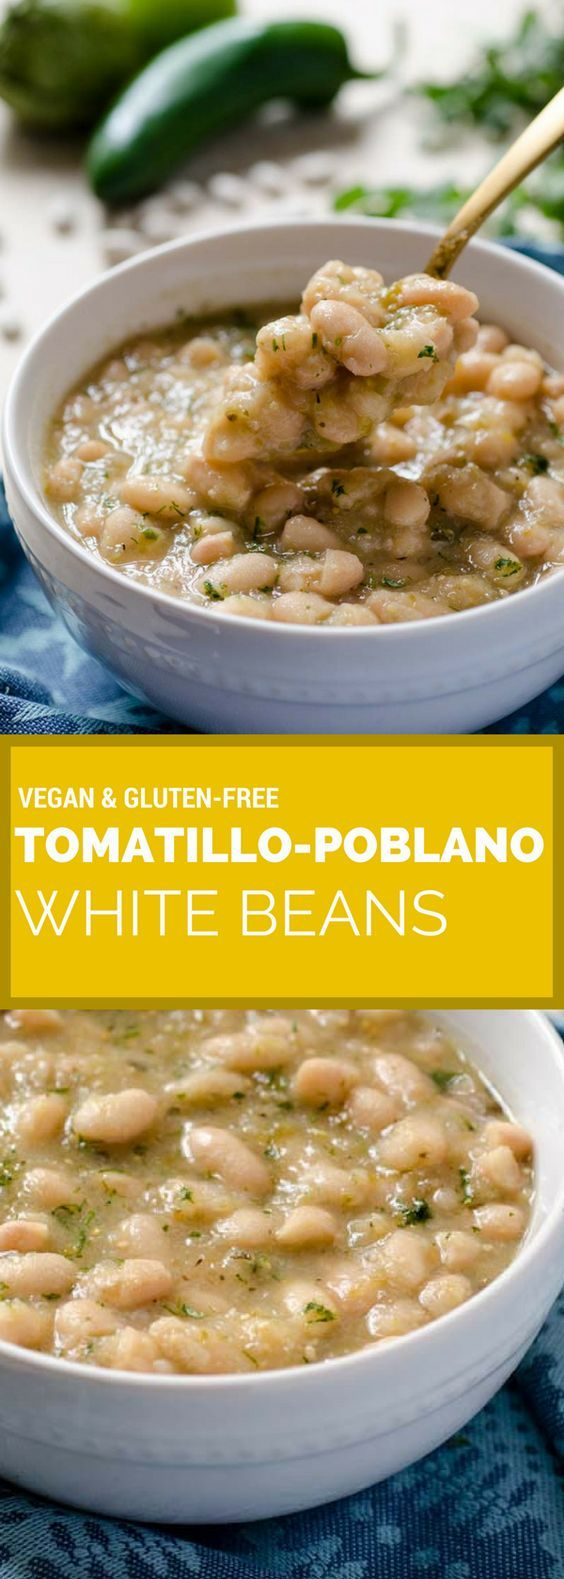 These tomatillo poblano white beans are a warm stew of perfectly creamy beans, tart tomatillos, spicy poblano pepper, onion, cumin, and oregano. They can be made in less than 40 minutes in your Instant Pot. veganmexican   instantpot   vegan   gluten-free   stew   healthy